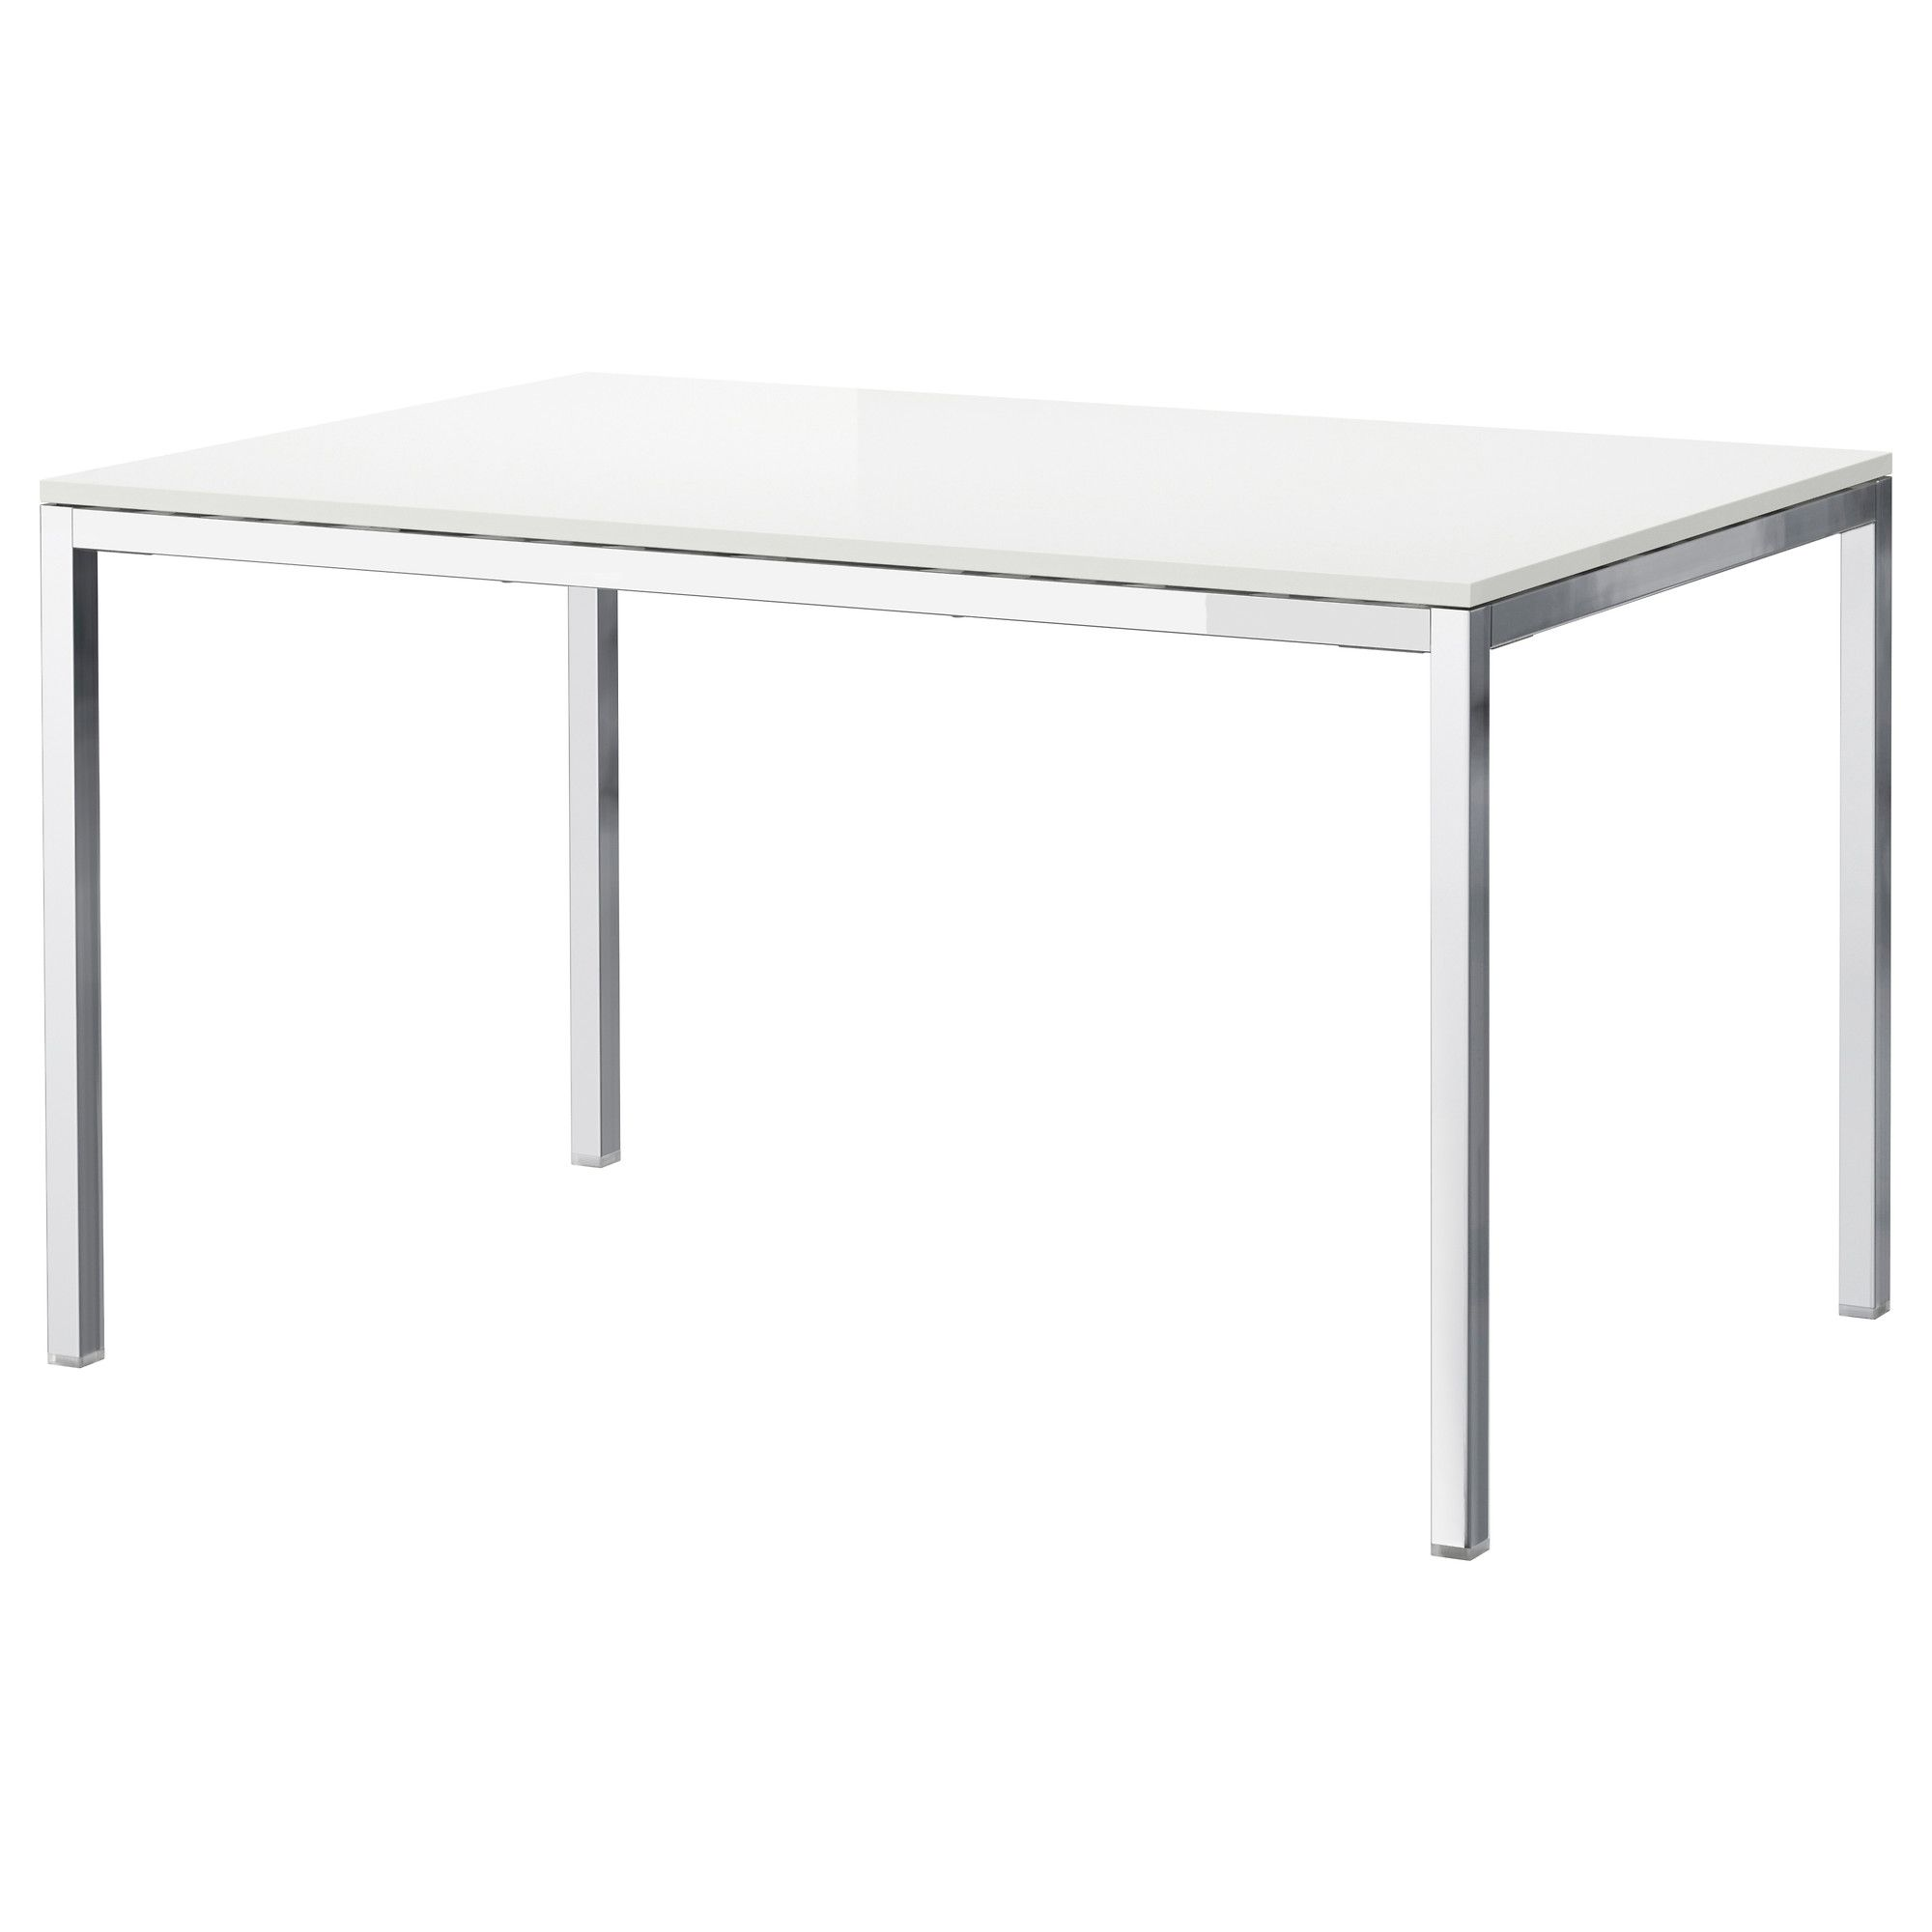 White Dining Table Ikea: Table, Chrome Plated, High Gloss White, 53 1/8x33 1/2